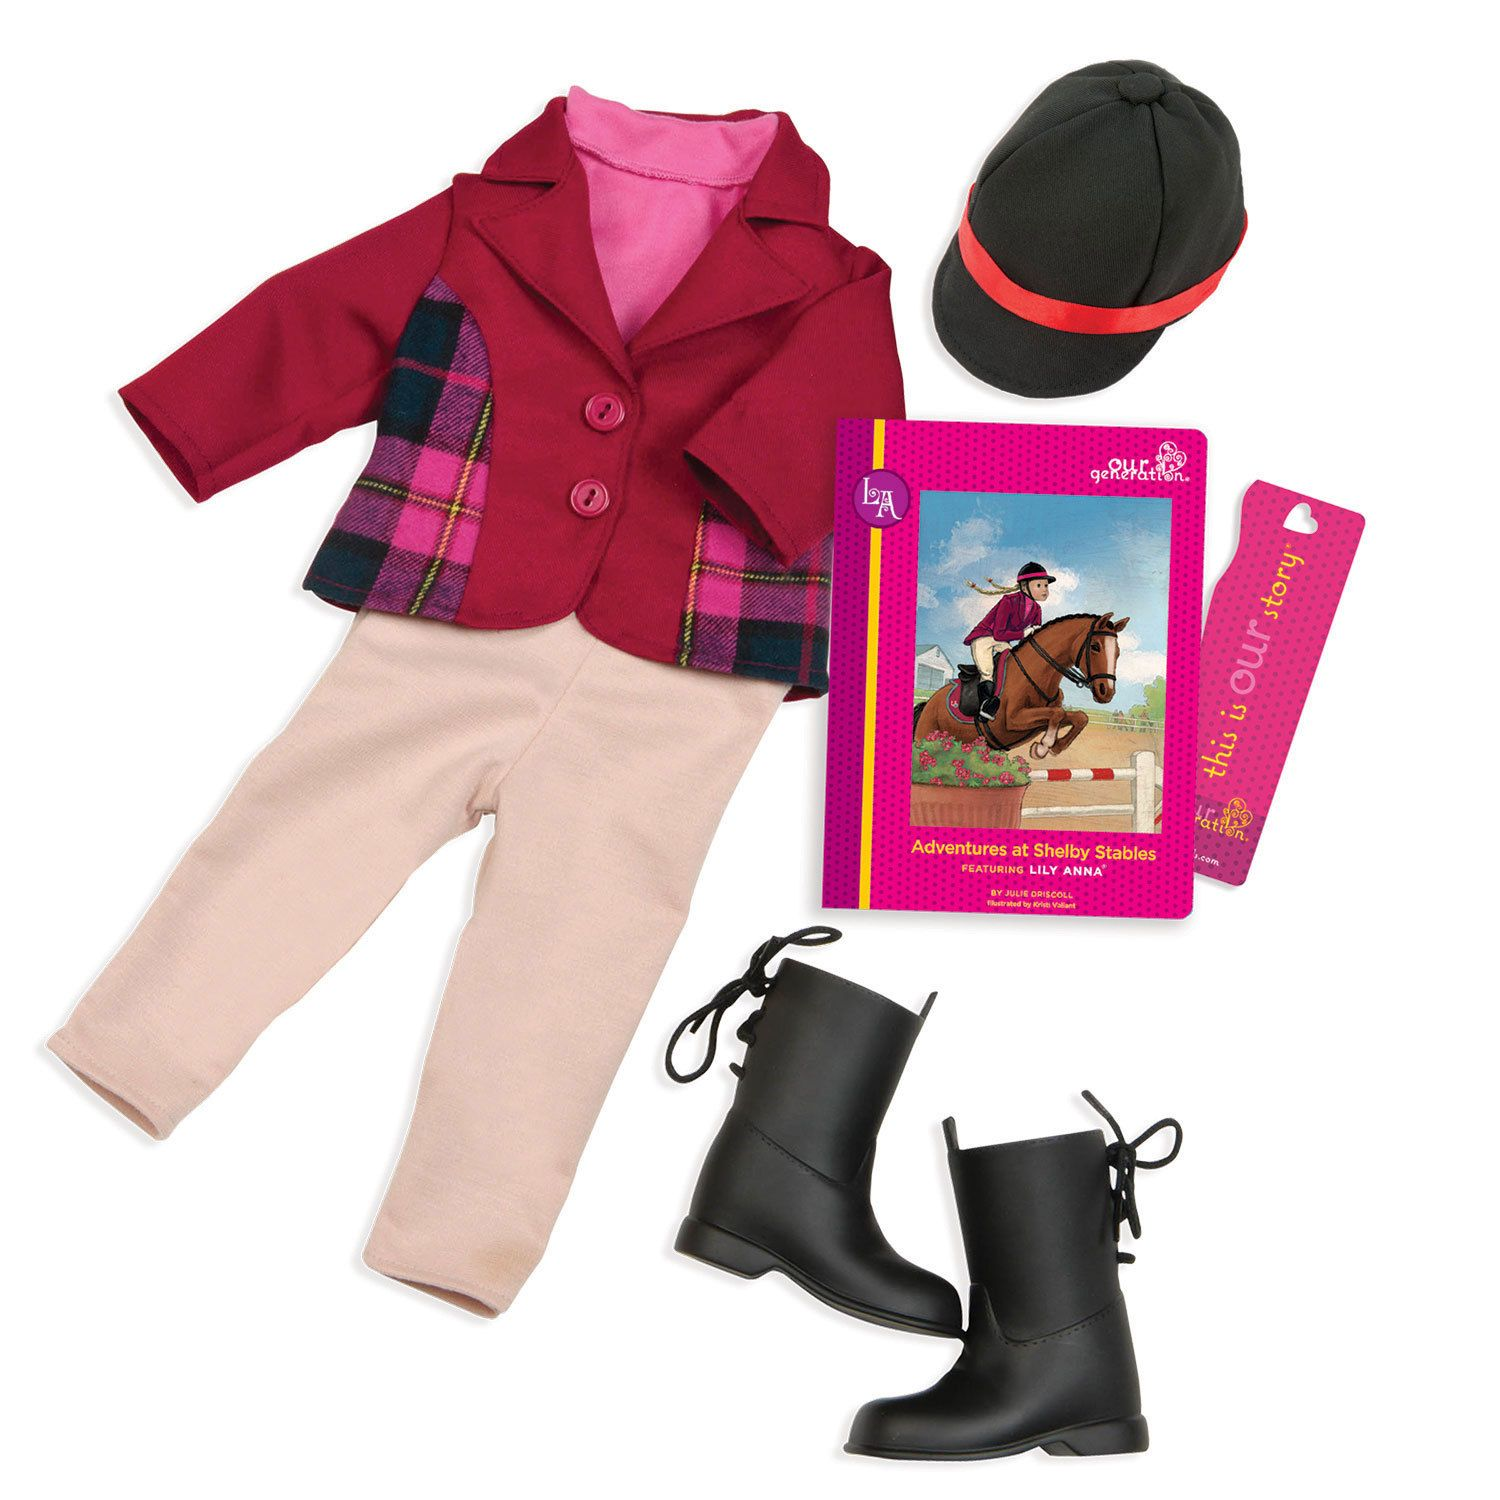 Our Generation Lily Anna - Read & Play Set. We are saddling our own horses and blazing our own trails.